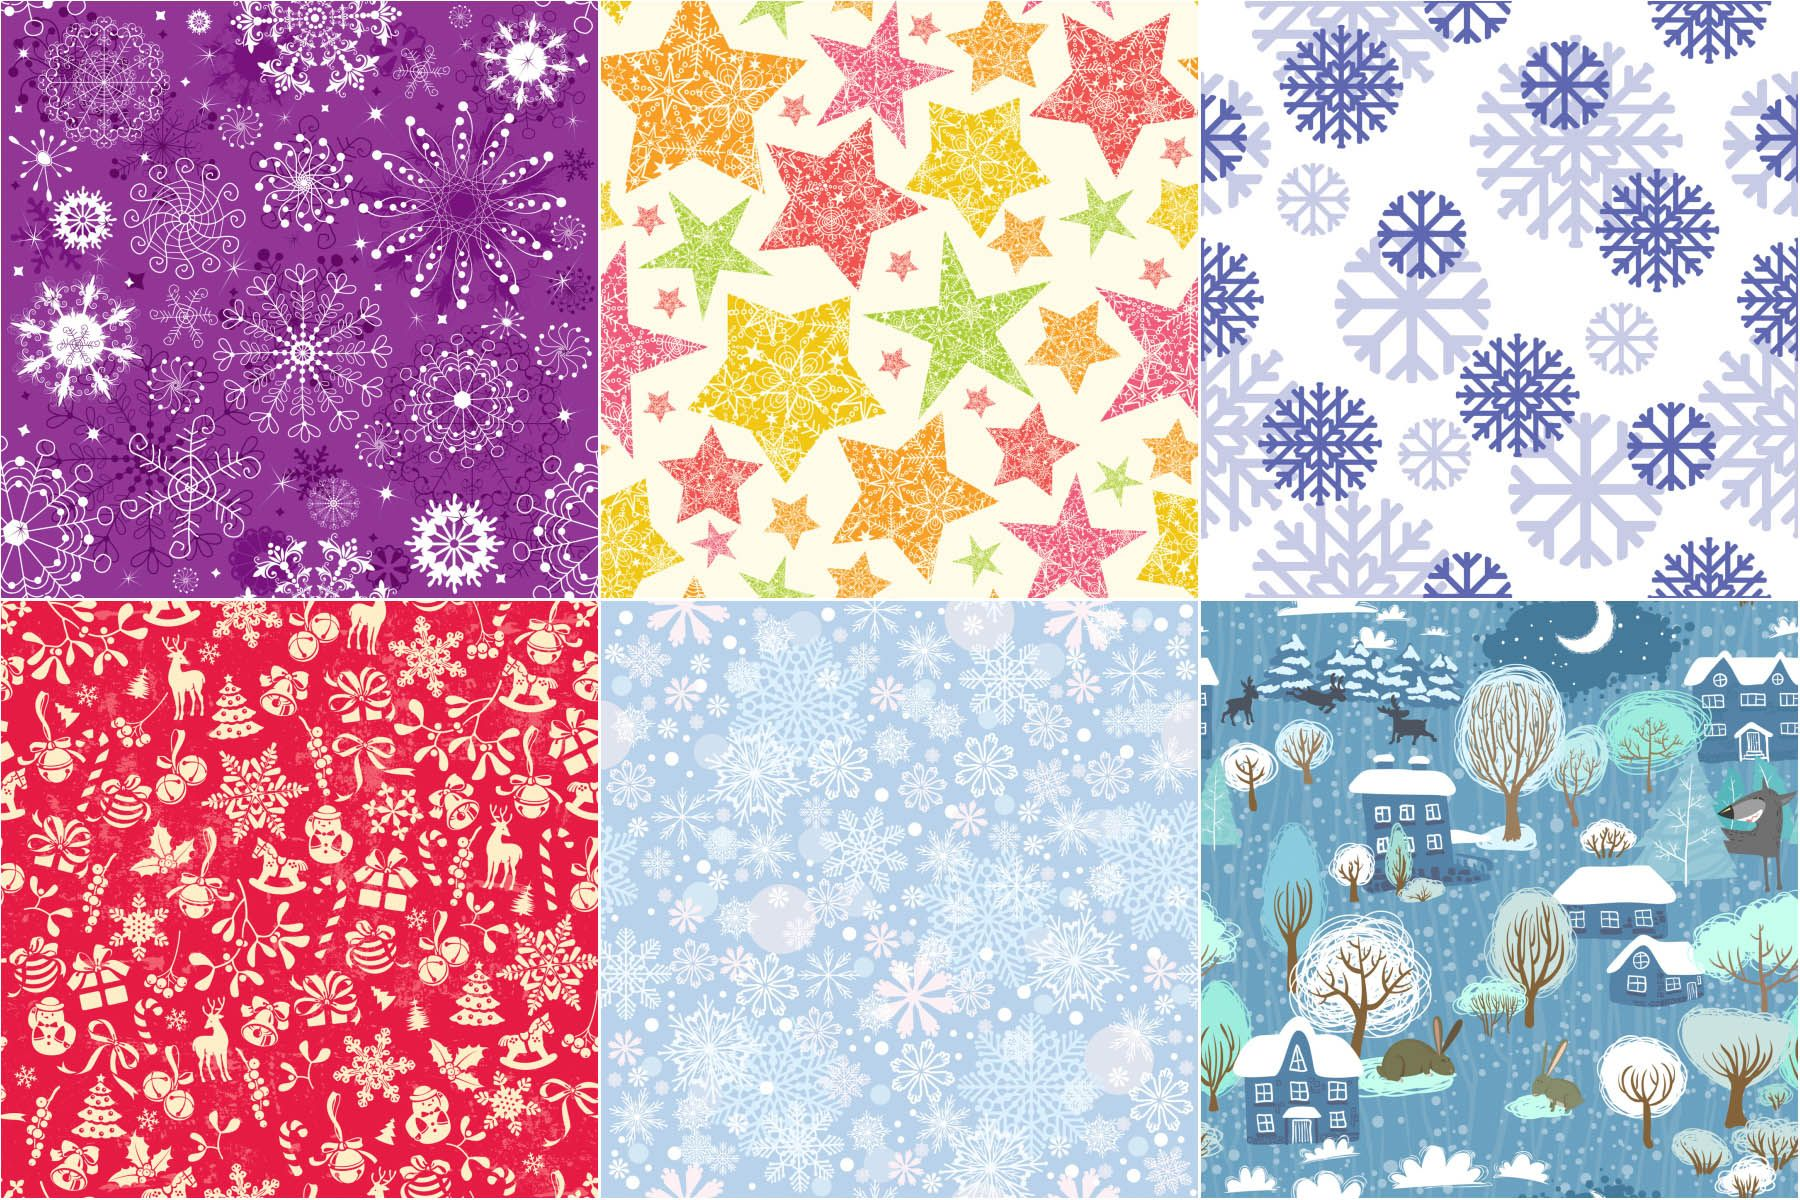 Christmas pattern with stars and snowflakes vectors